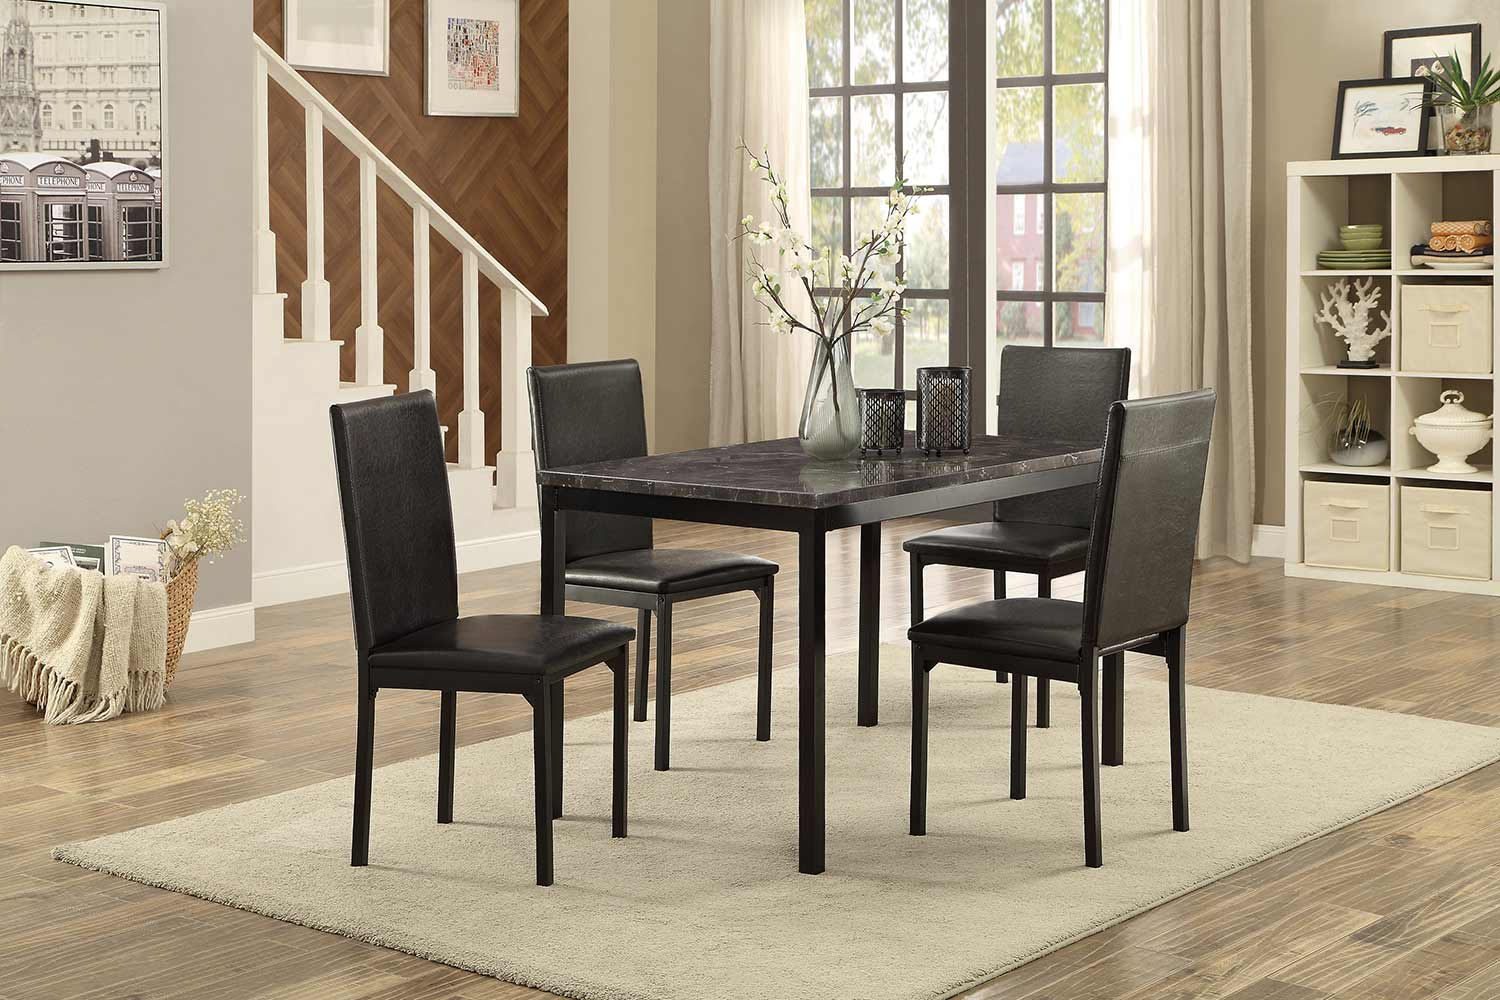 Homelegance Tempe Dining Set - Faux Marble Top